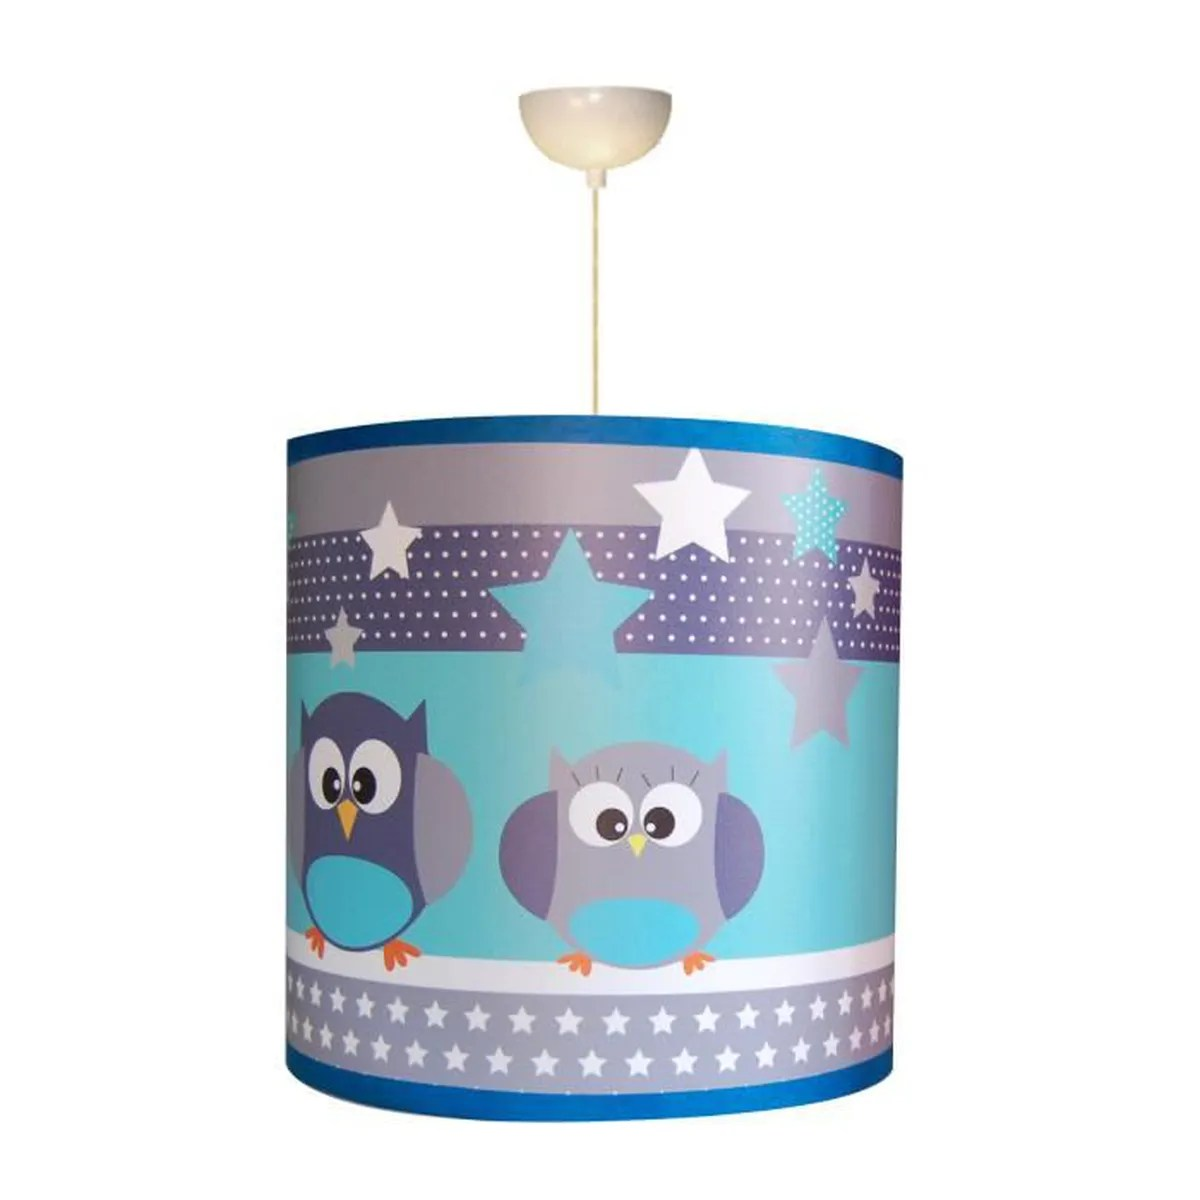 Lampe Suspension Enfant Suspension Luminaire Enfant